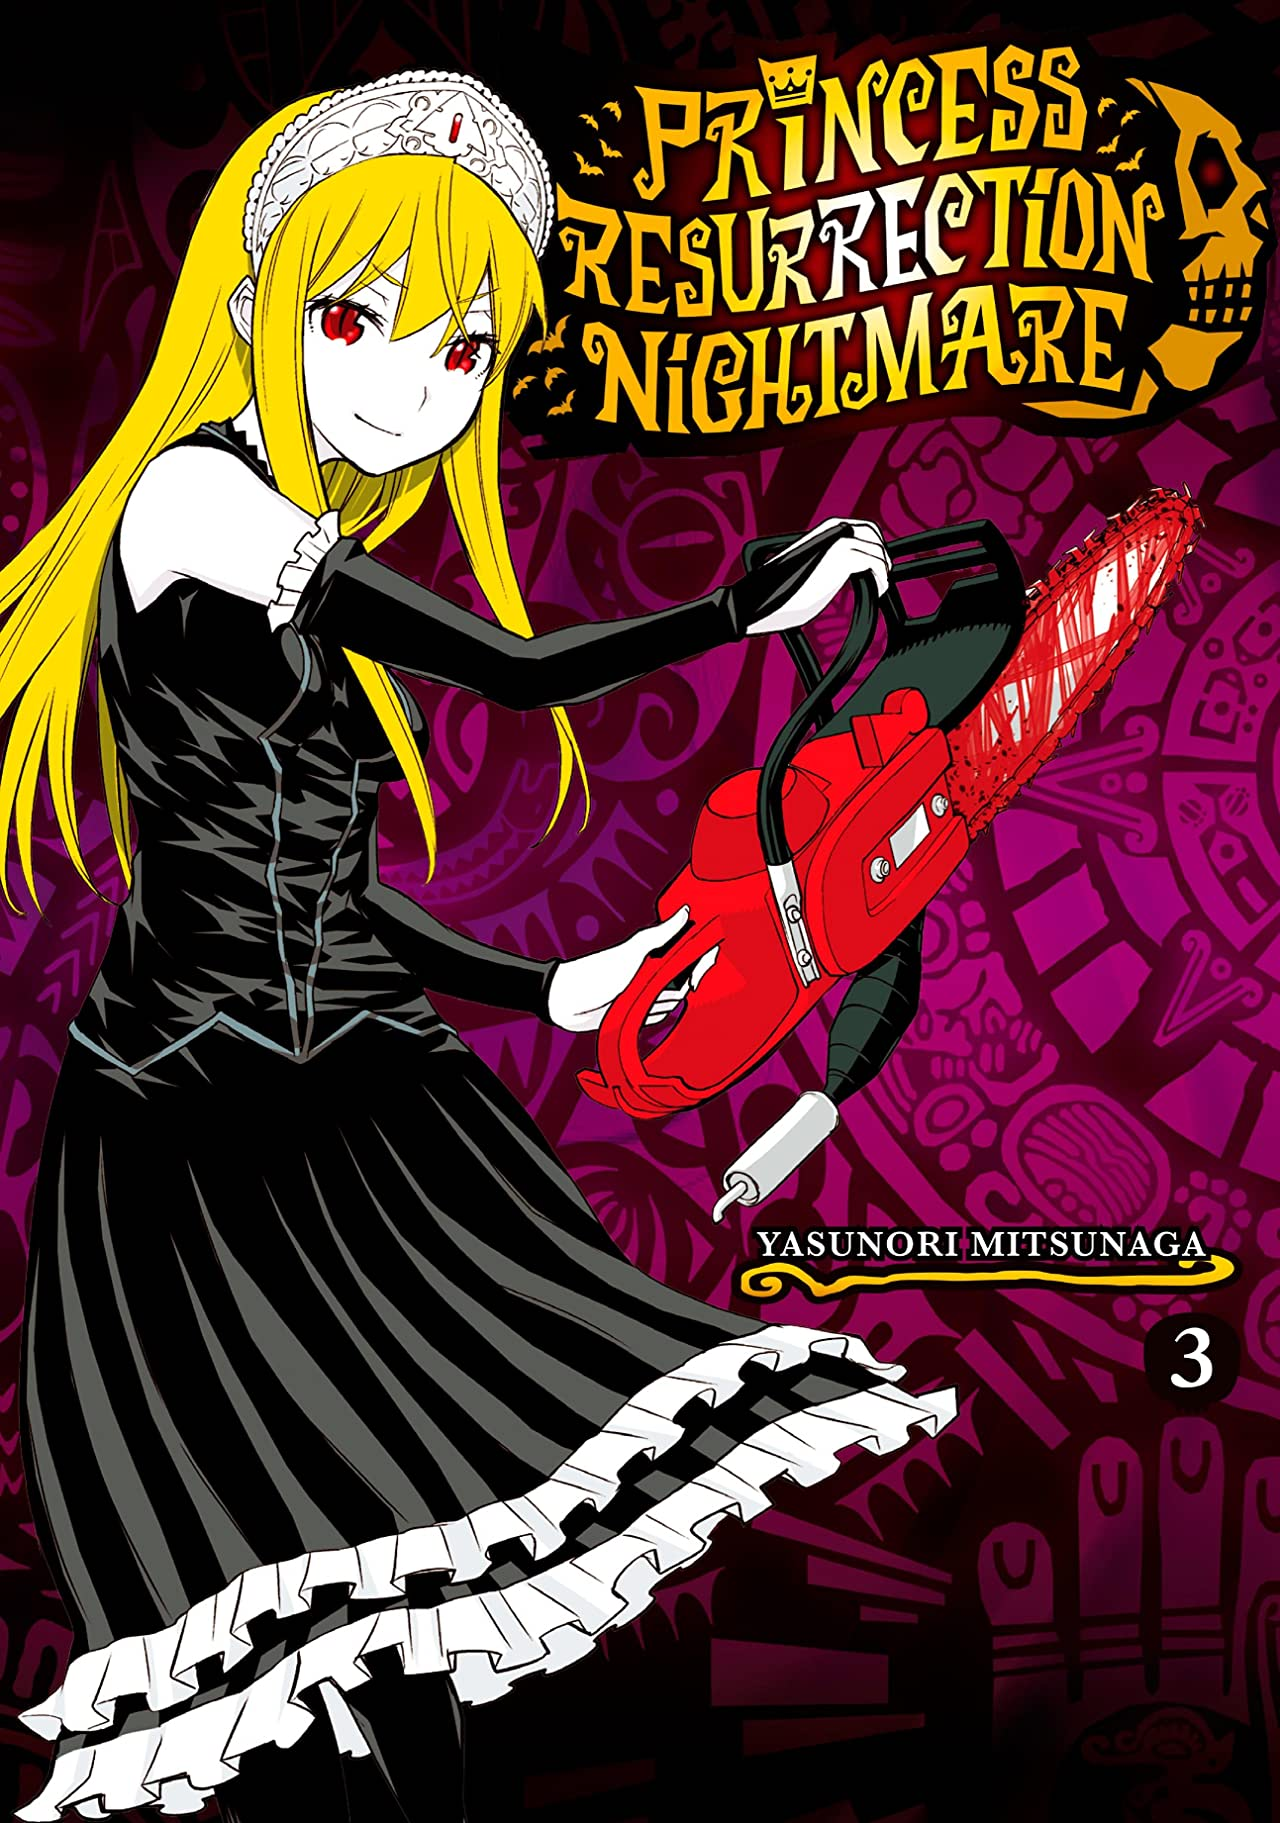 Princess Resurrection Nightmare Vol. 3